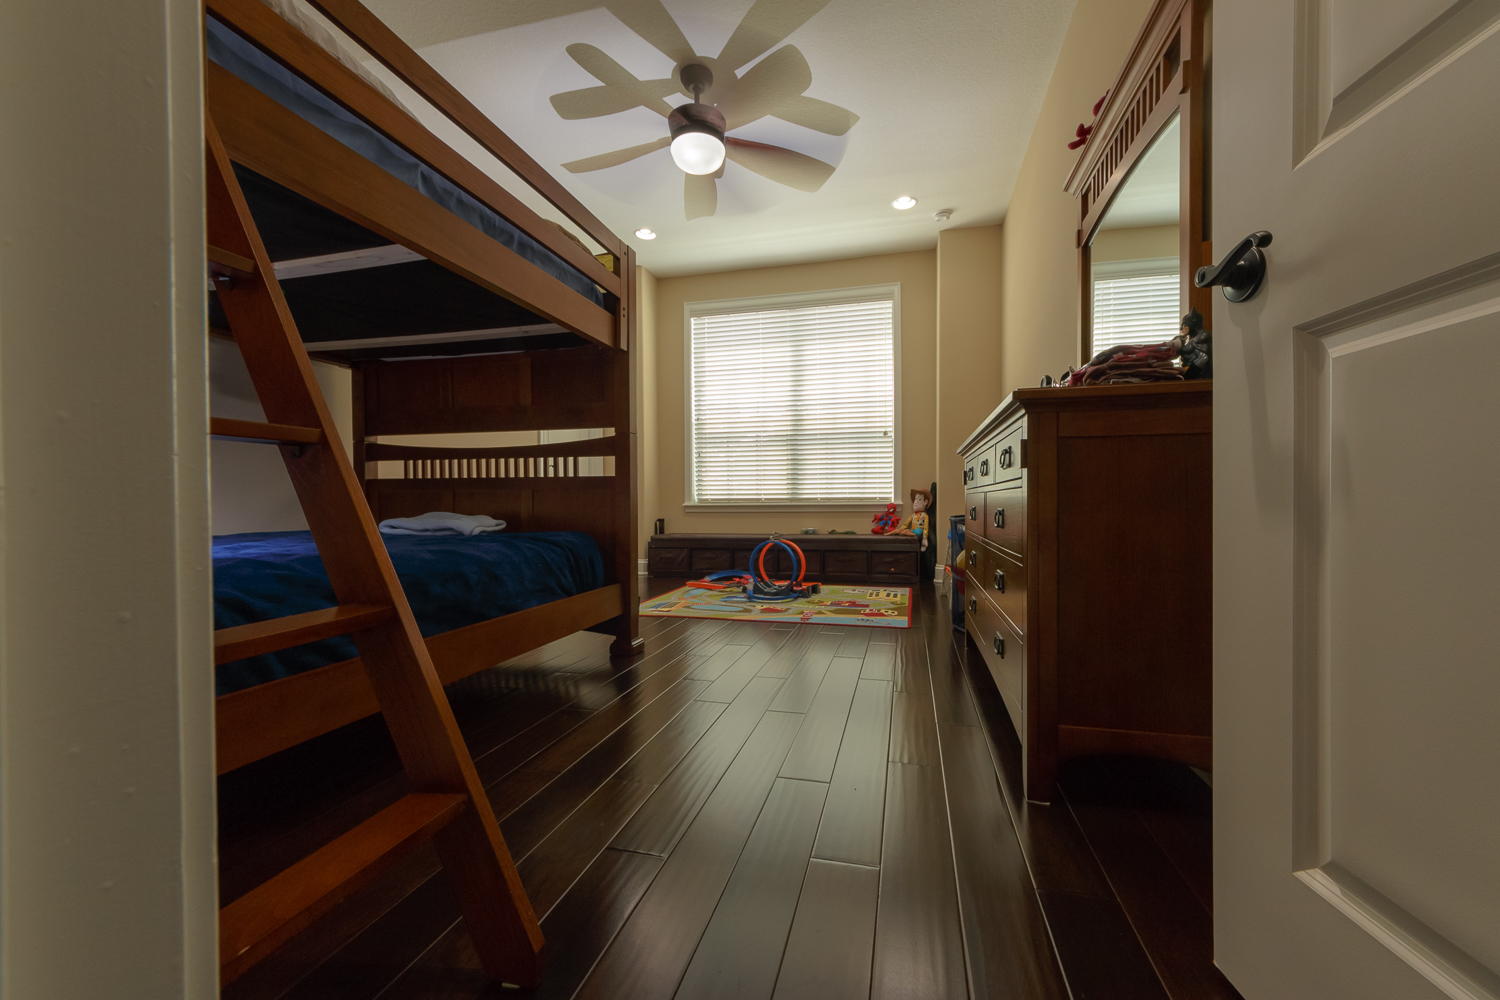 Spanish Hickory Blackhills Wood Flooring in Bedroom with bunkbeds